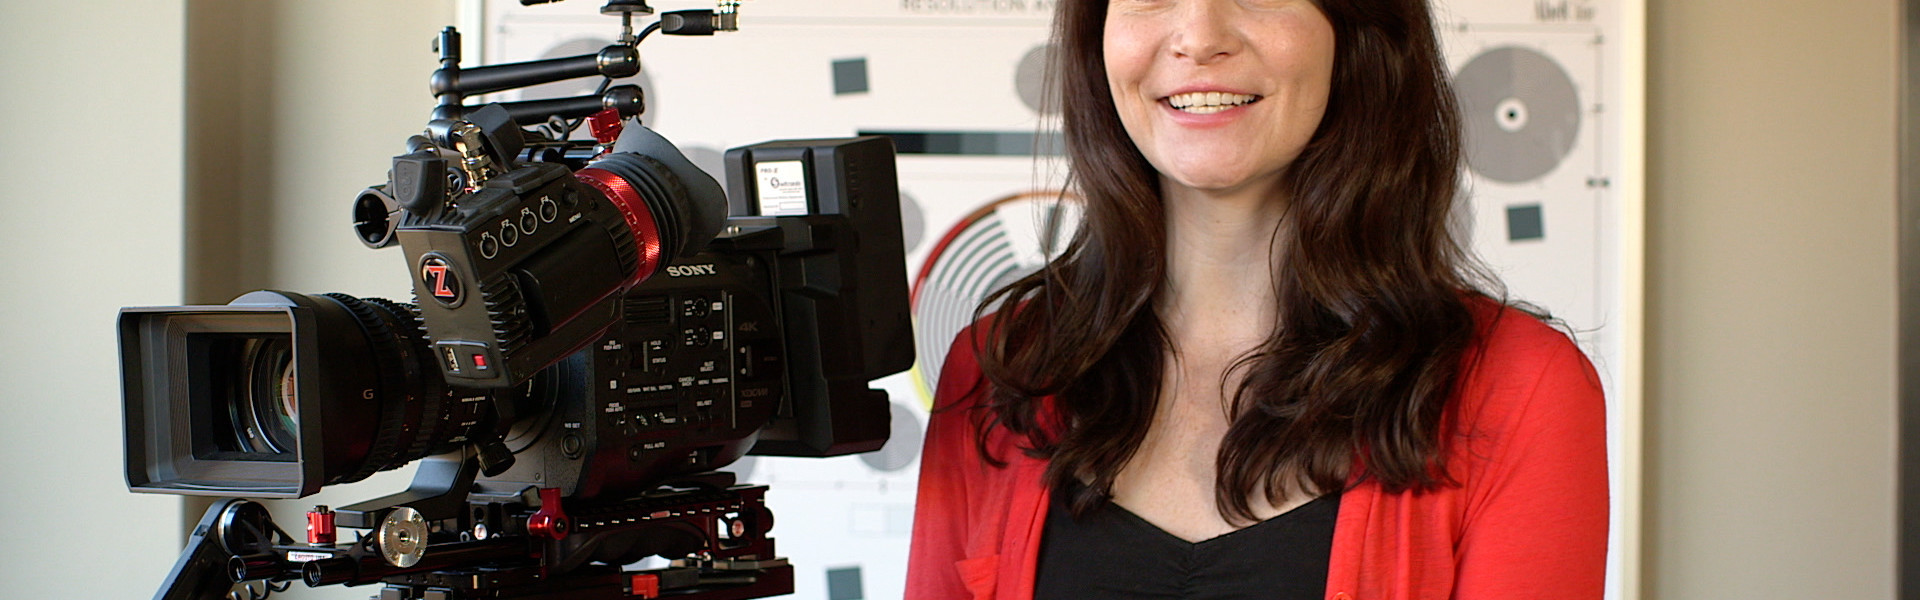 Header image for article Zacuto Gratical: A Closer Look at Exposure Tools & LUTs